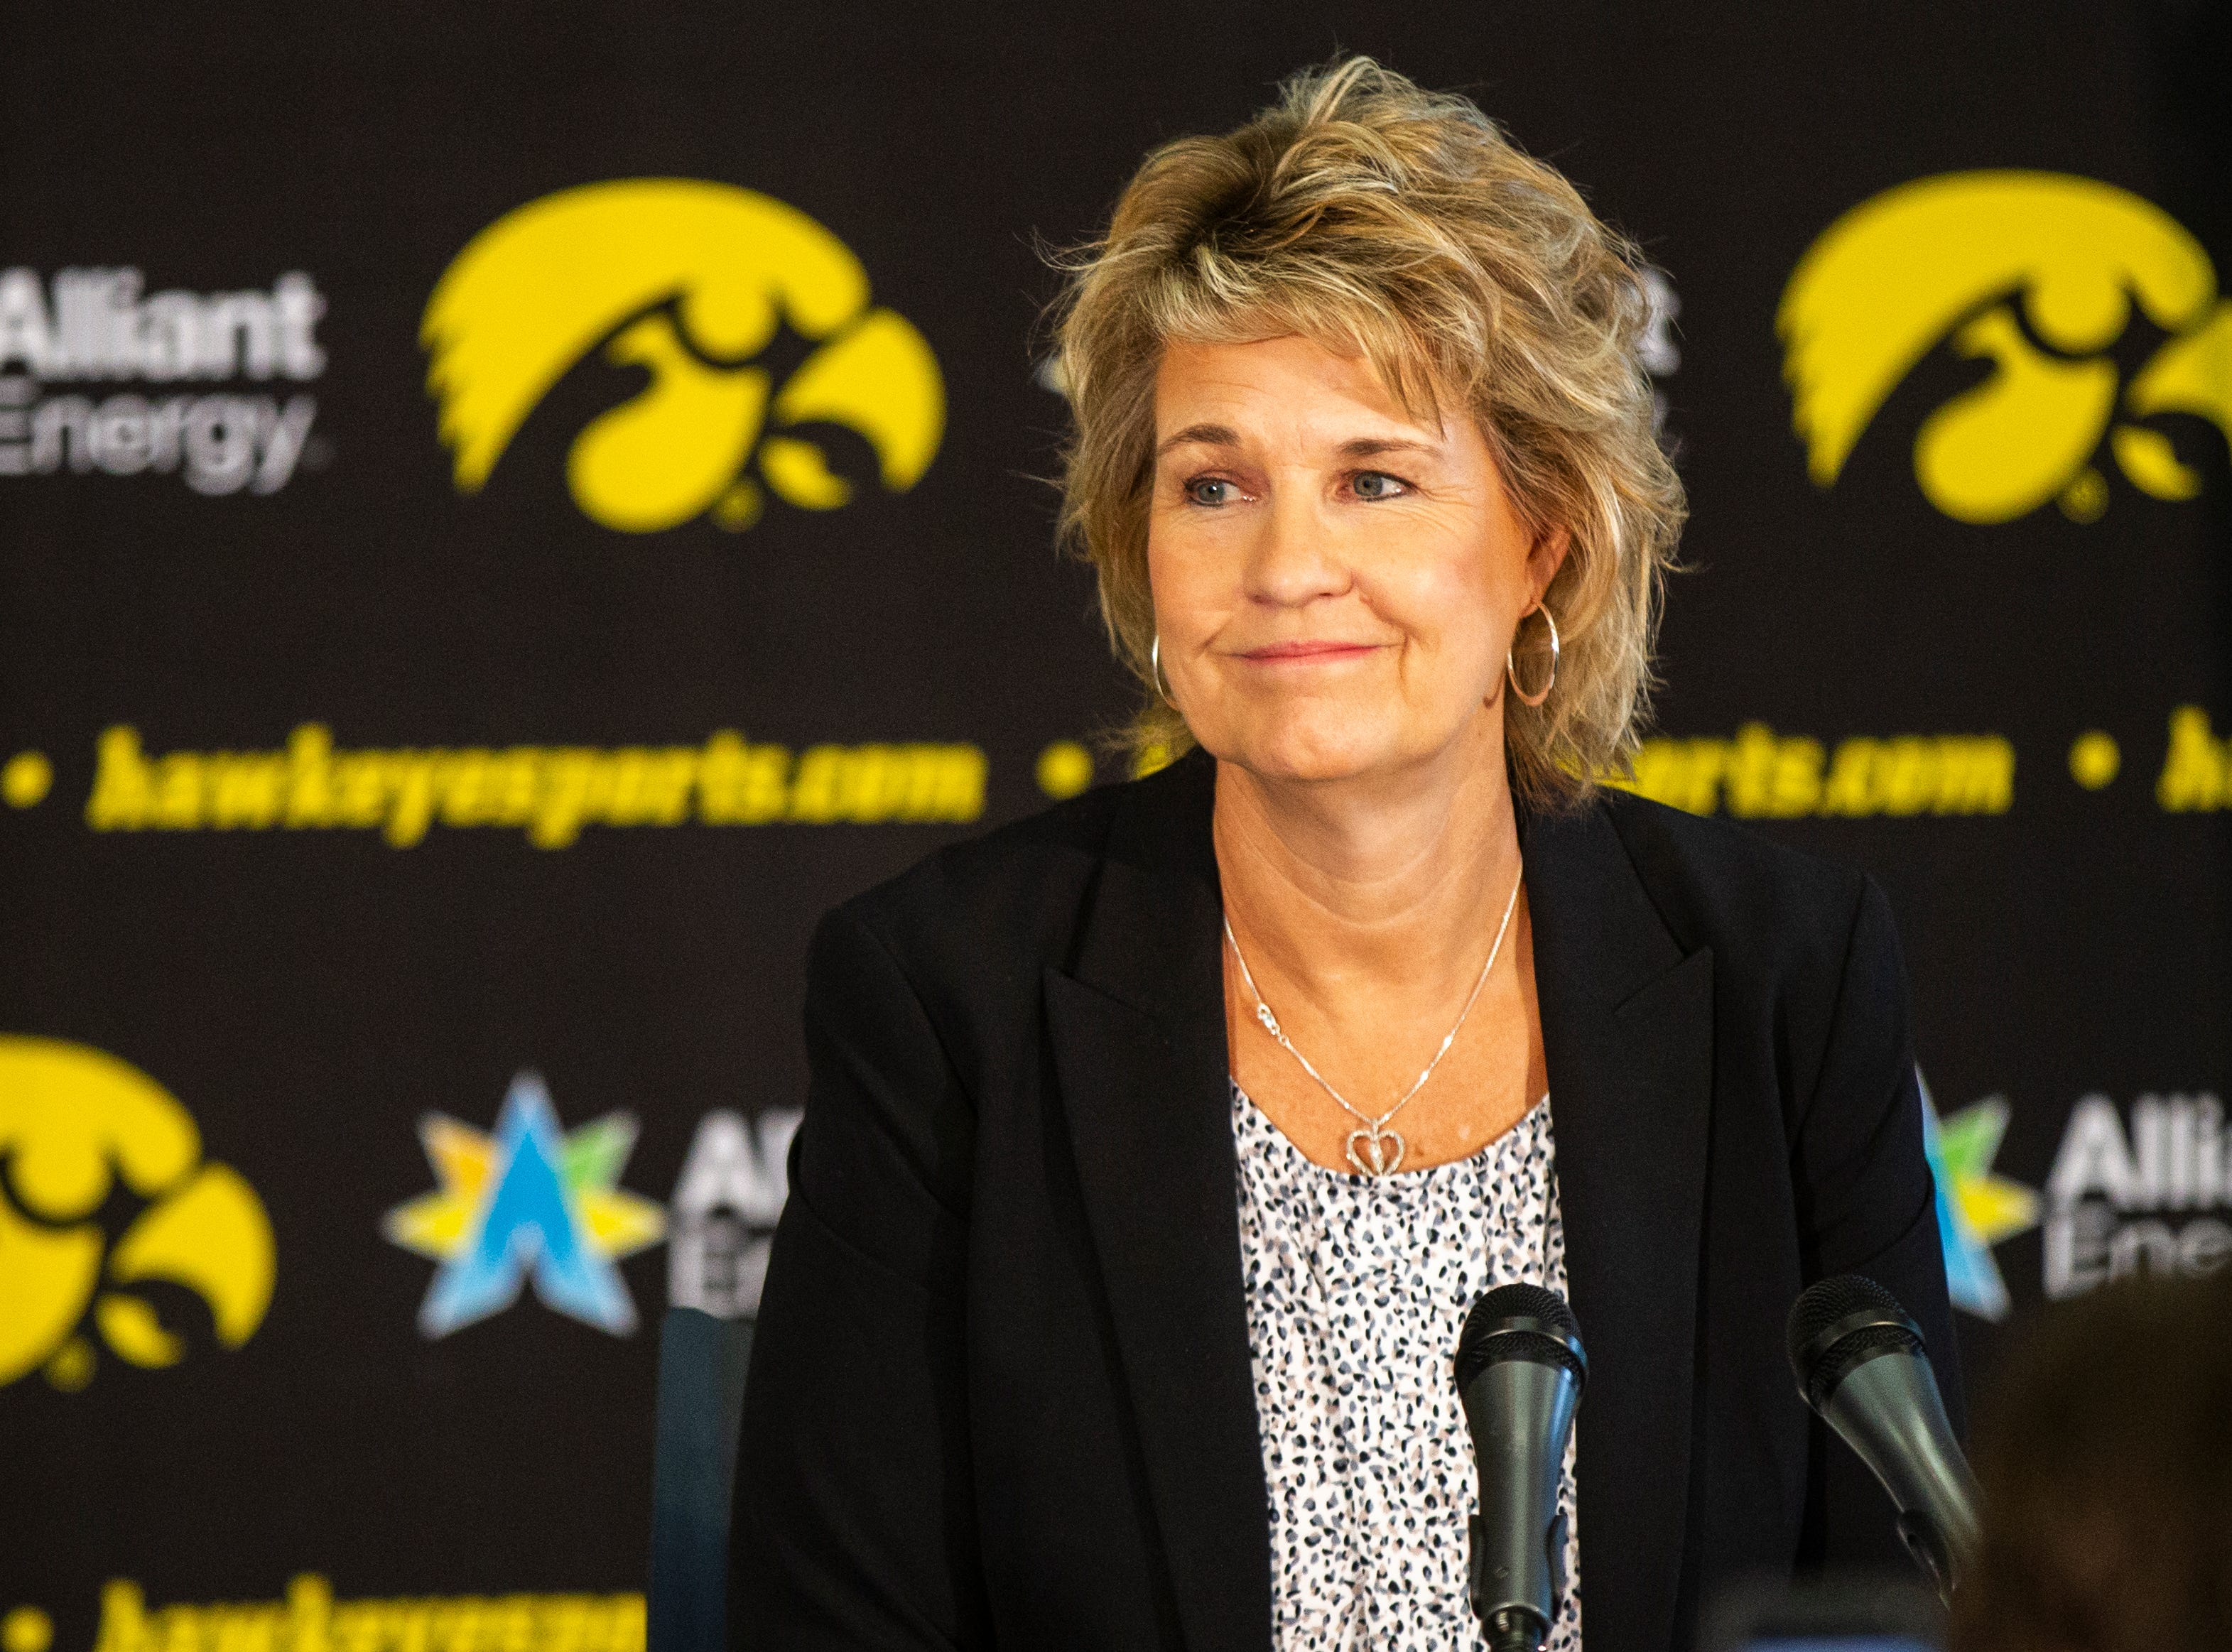 Iowa head coach Lisa Bluder speaks with reporters during Hawkeye women's basketball media day on Wednesday, Oct. 31, 2018, at Carver-Hawkeye Arena in Iowa City.